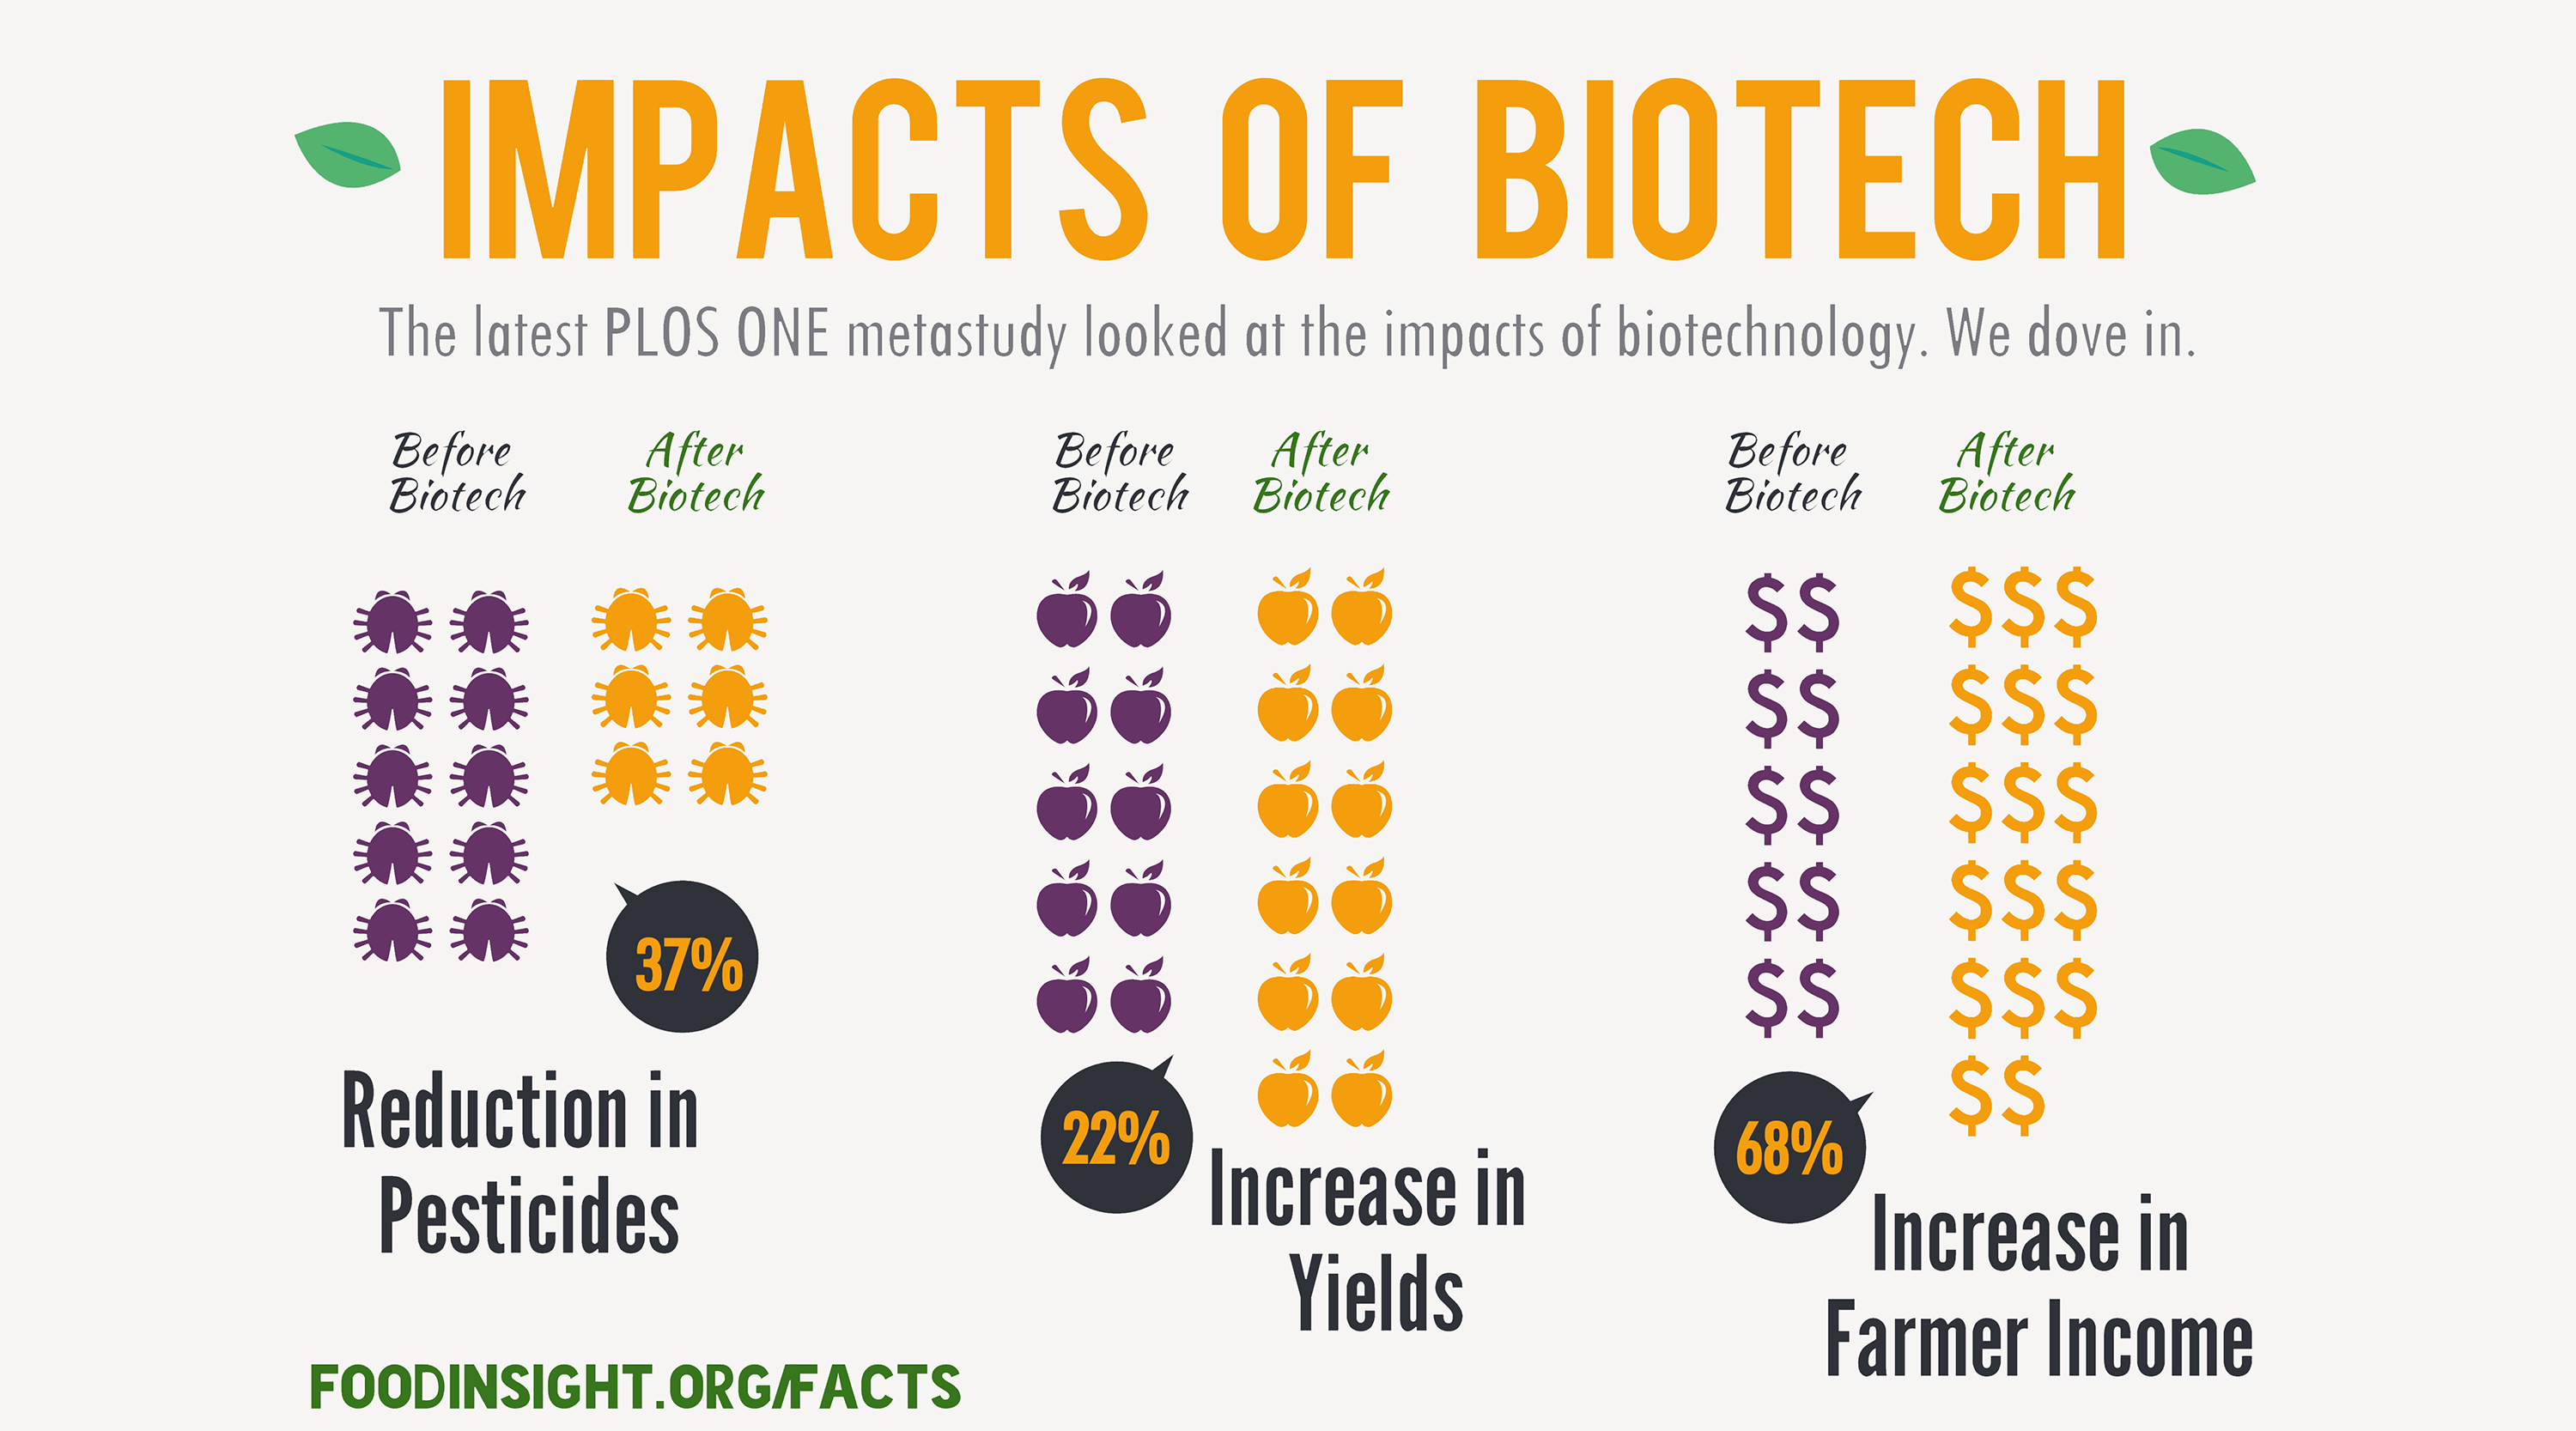 The Impacts Of Biotechnology A Close Look At The Latest Study